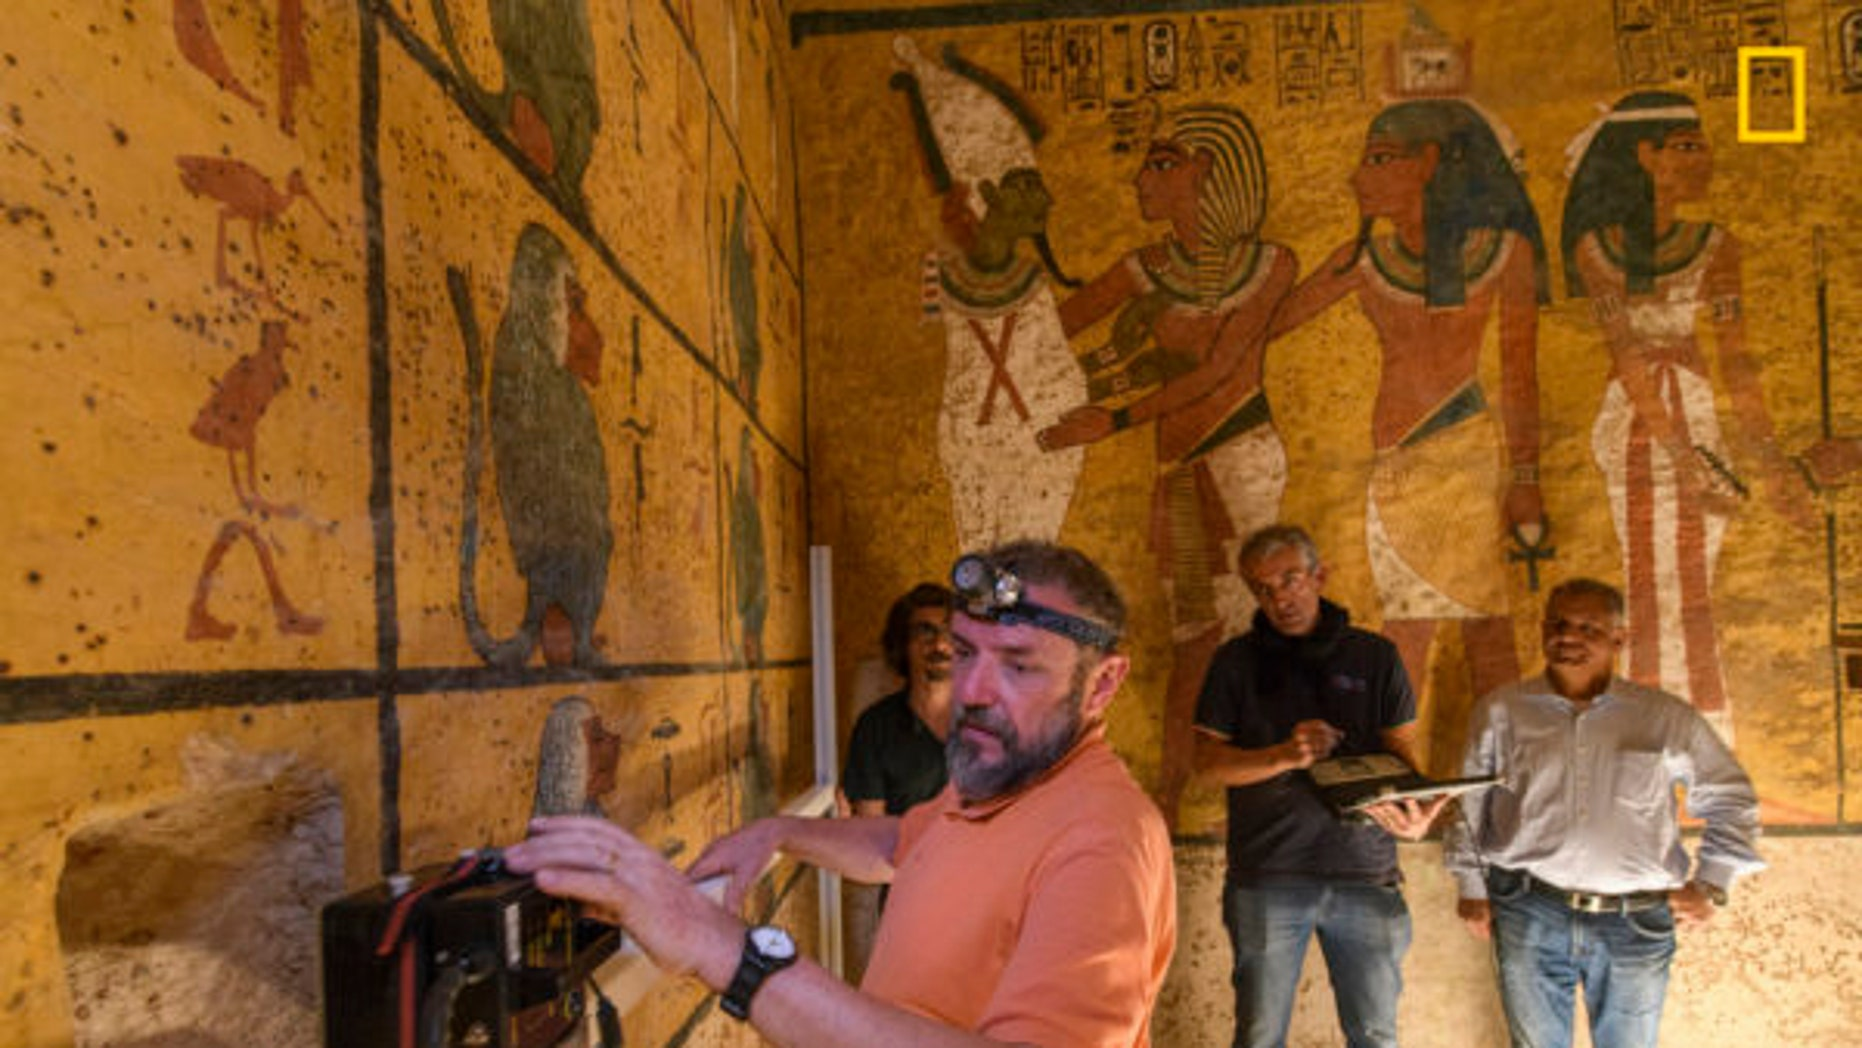 Exclusive Photos: Search Resumes for Hidden Chambers In King Tut's Tomb. A technician uses ground-penetrating radar (GPR) to search for voids behind the west wall of King Tutankhamun's tomb. The new investigation is directed by specialists from the Polytechnic University of Turin in Italy.  (Kenneth Garrett)